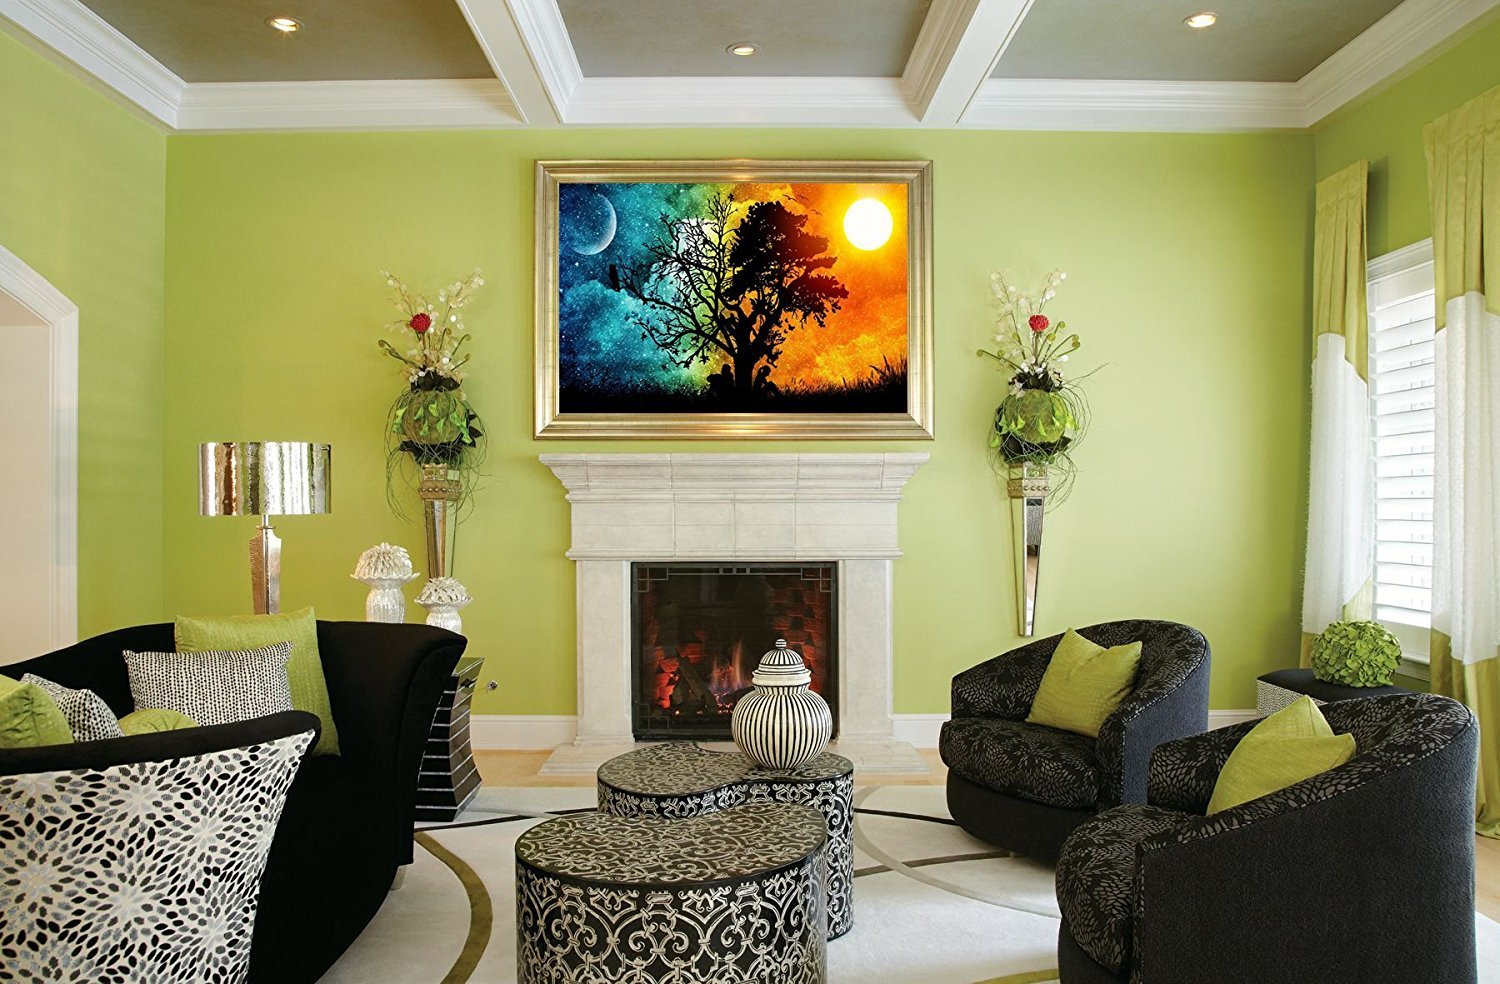 5D Diamond Painting,Rhinestone Diamond Embroidery Paintings Pictures DIY Paint with Diamonds Arts Craft for Home Wall Decor 35 x 50cm Full Drill